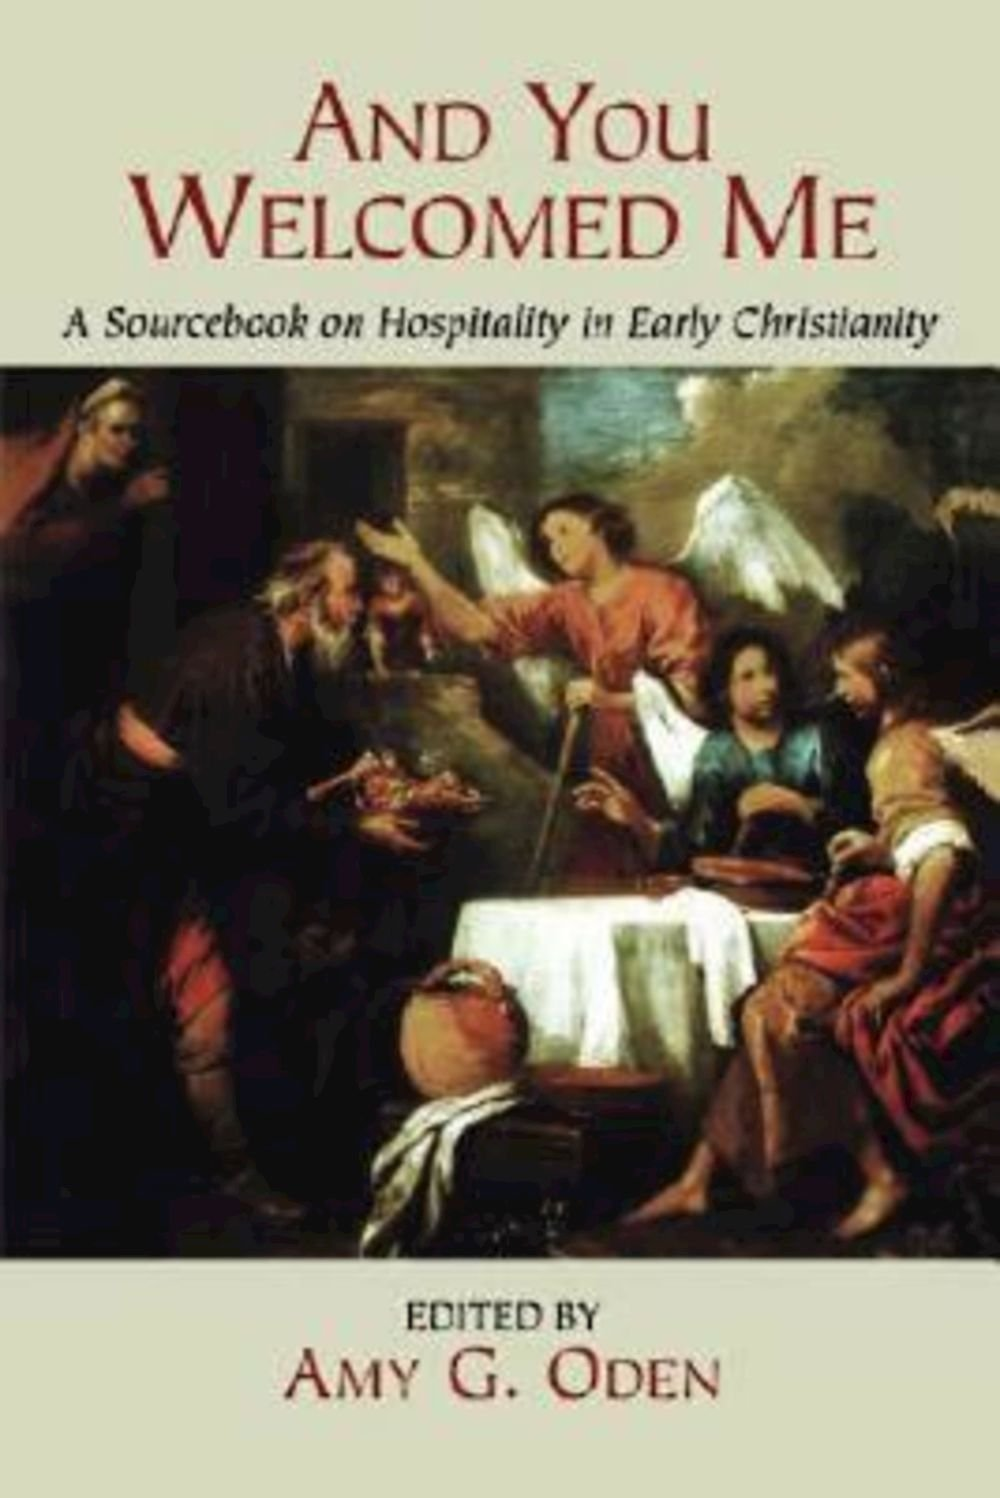 And you welcomed me a sourcebook on hospitality in early and you welcomed me a sourcebook on hospitality in early christianity amy g oden 9780687096718 amazon books fandeluxe Gallery